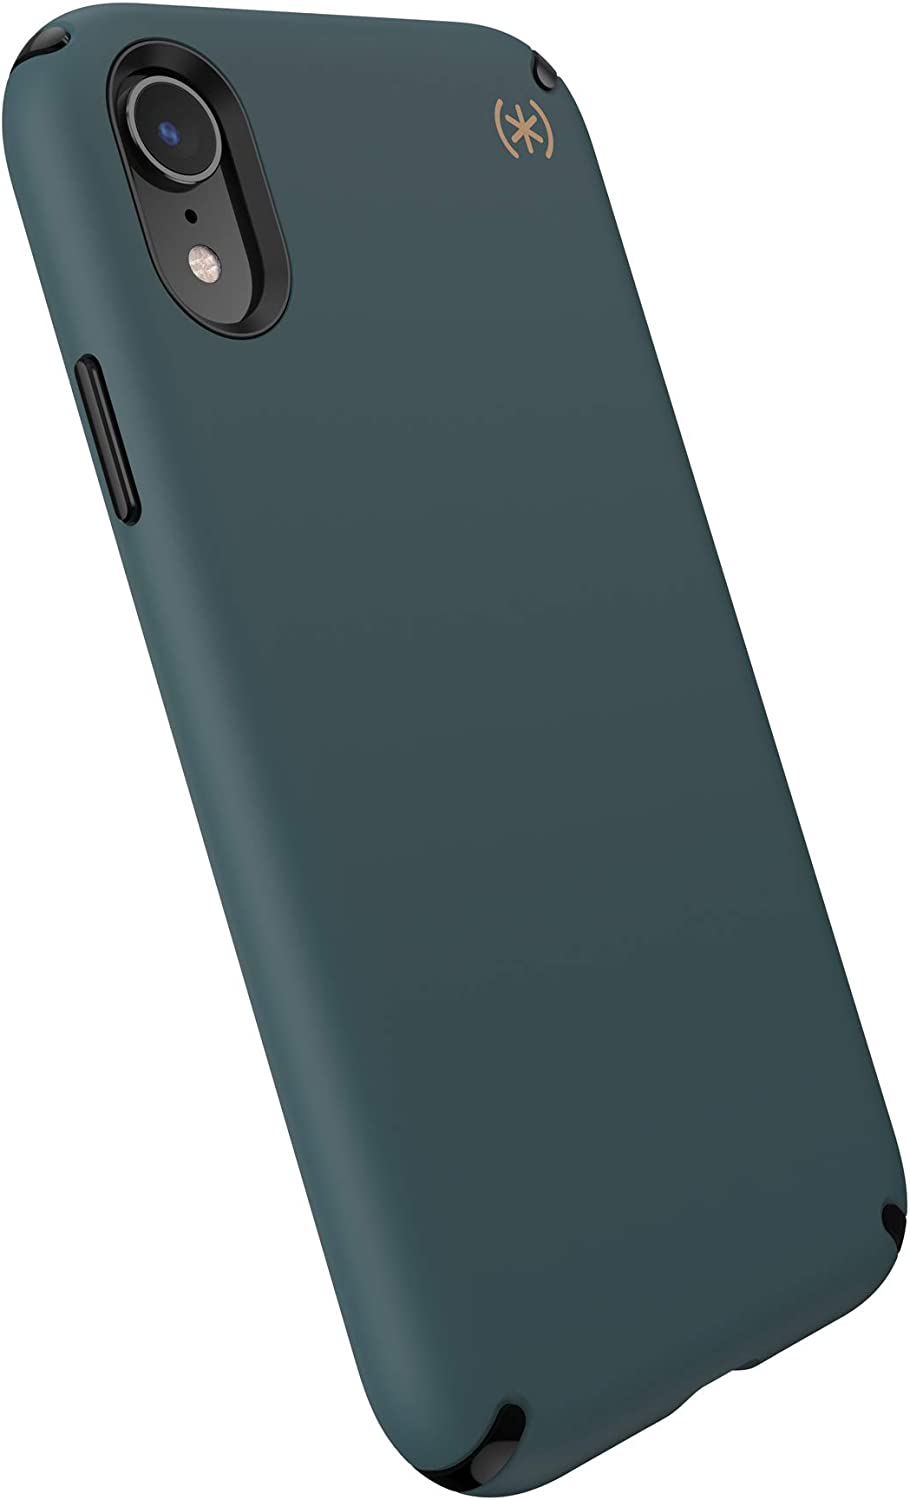 Speck Products Presidio2 PRO Case, Compatible with iPhone XR, Terrain Green/Black/Caramel Brown (136254-9145)